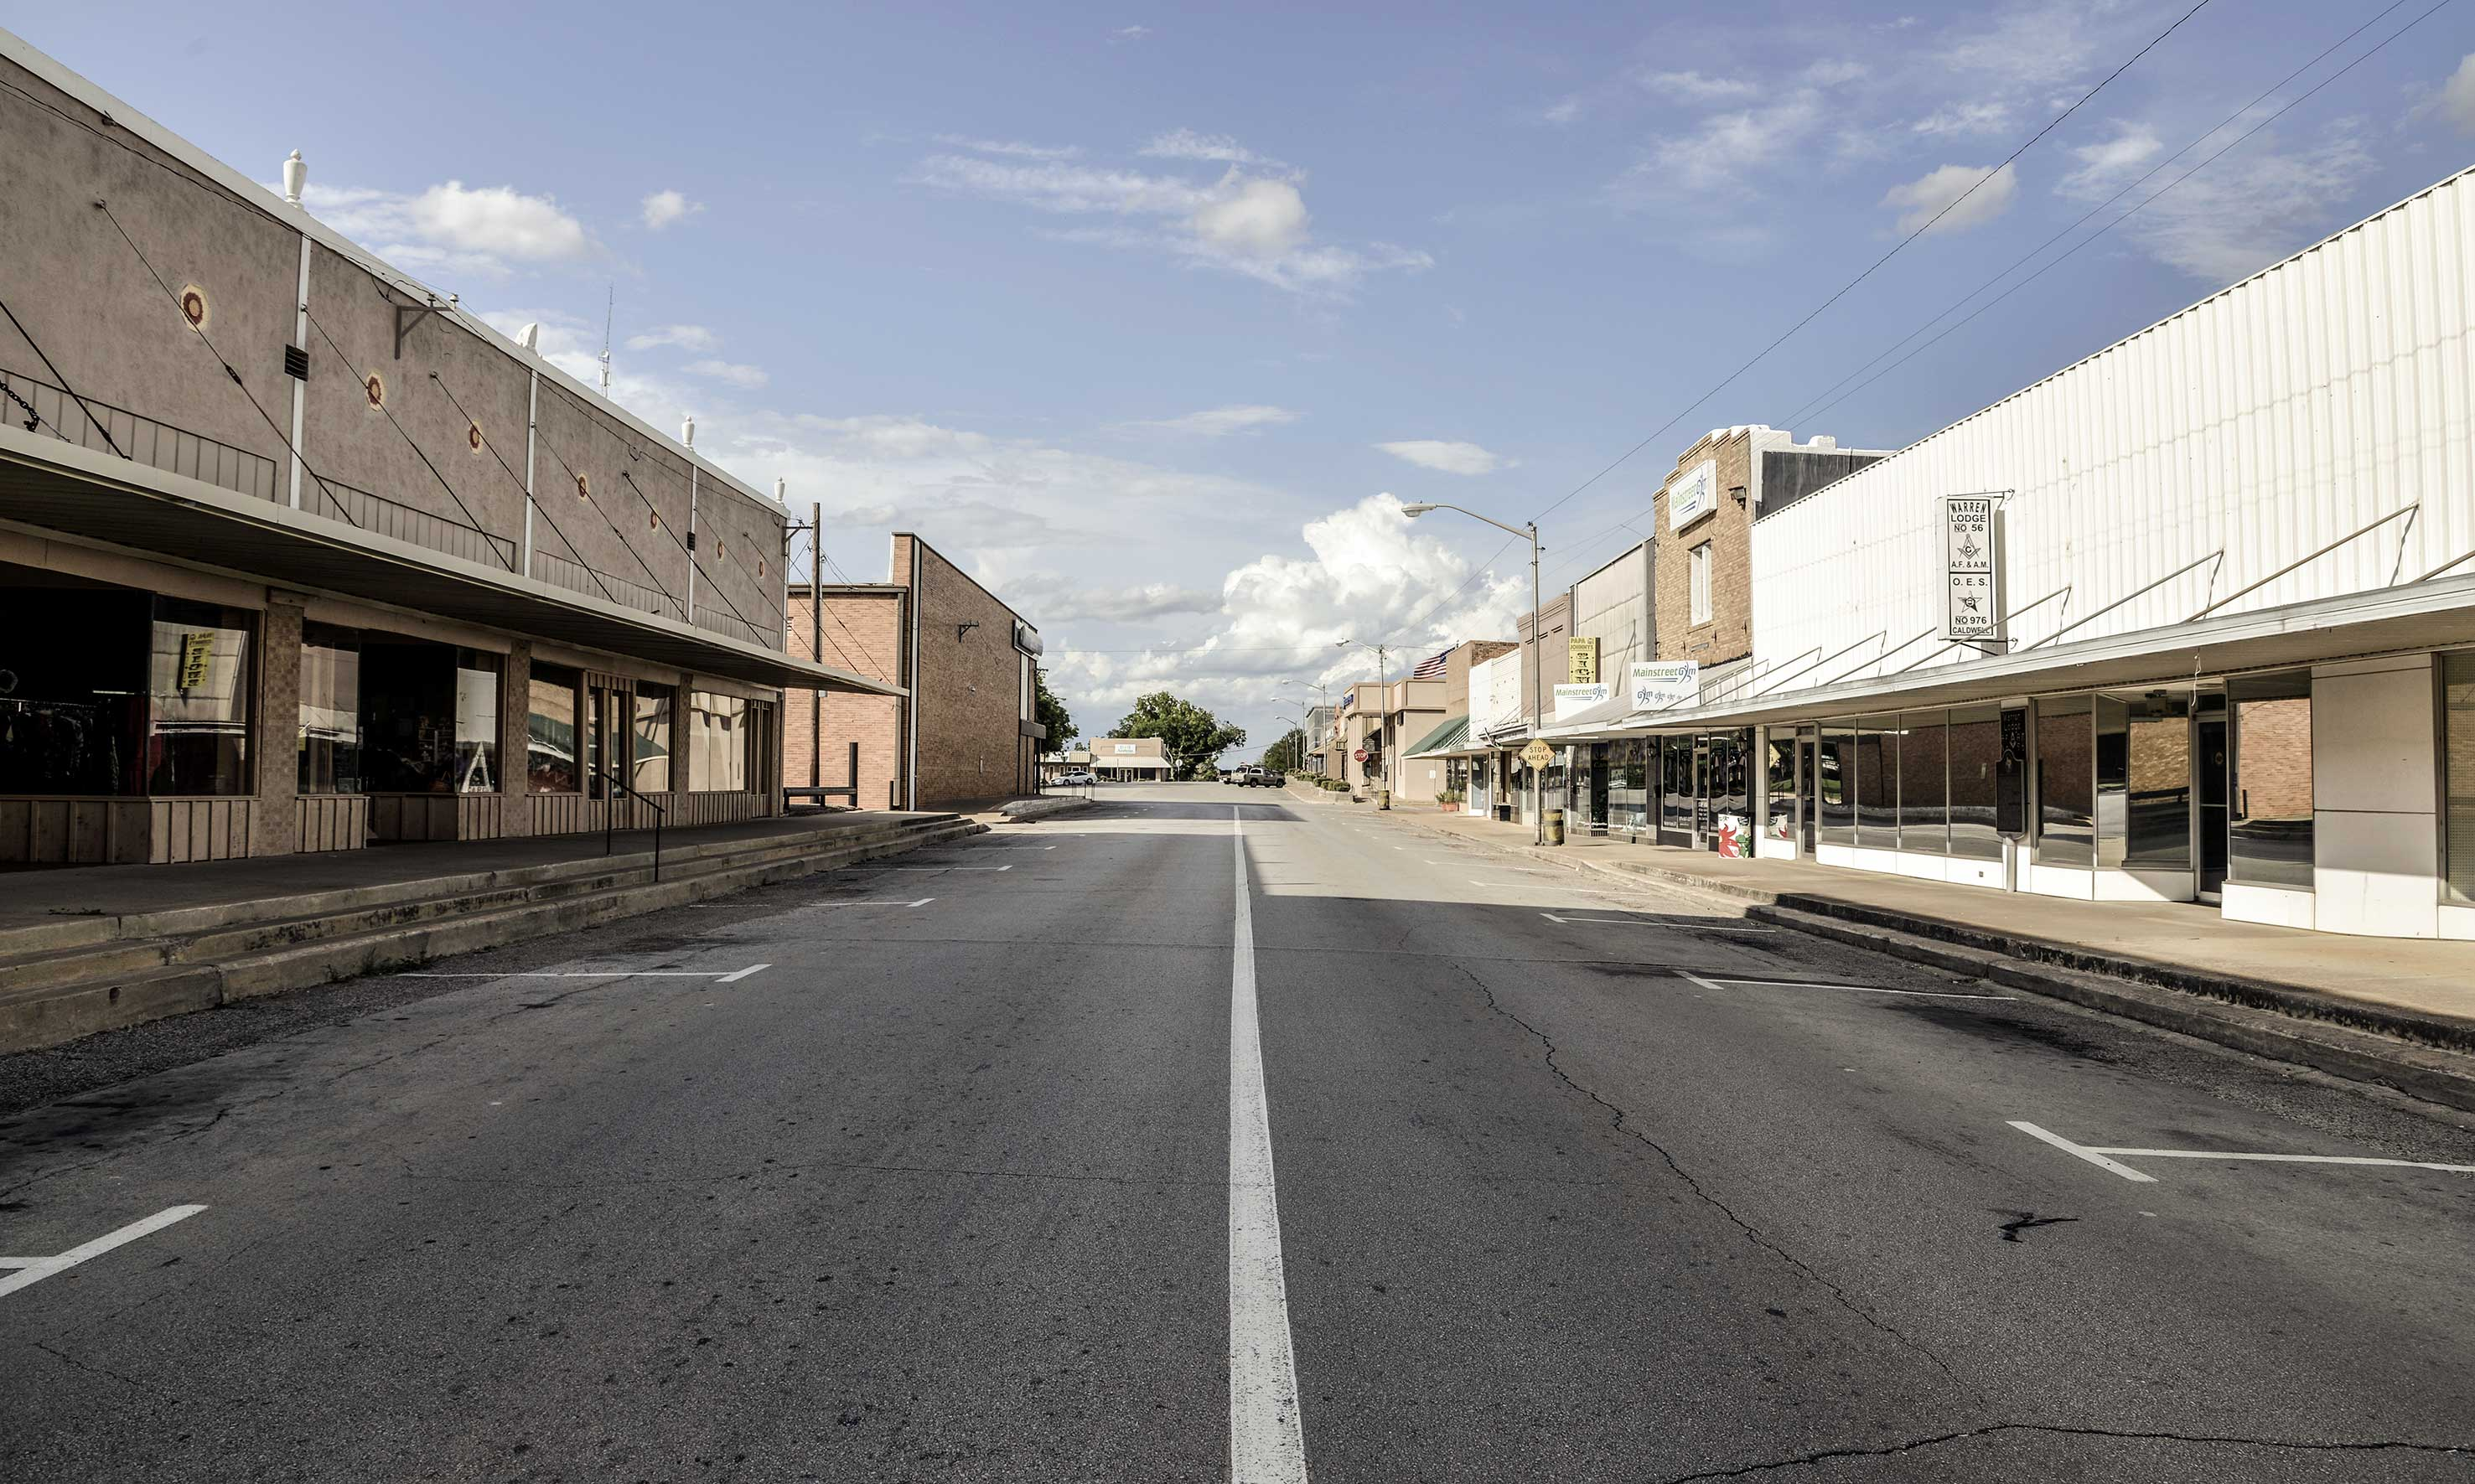 6-Far-Fading-West,-Downtown-(Caldwell,-Texas),-2016